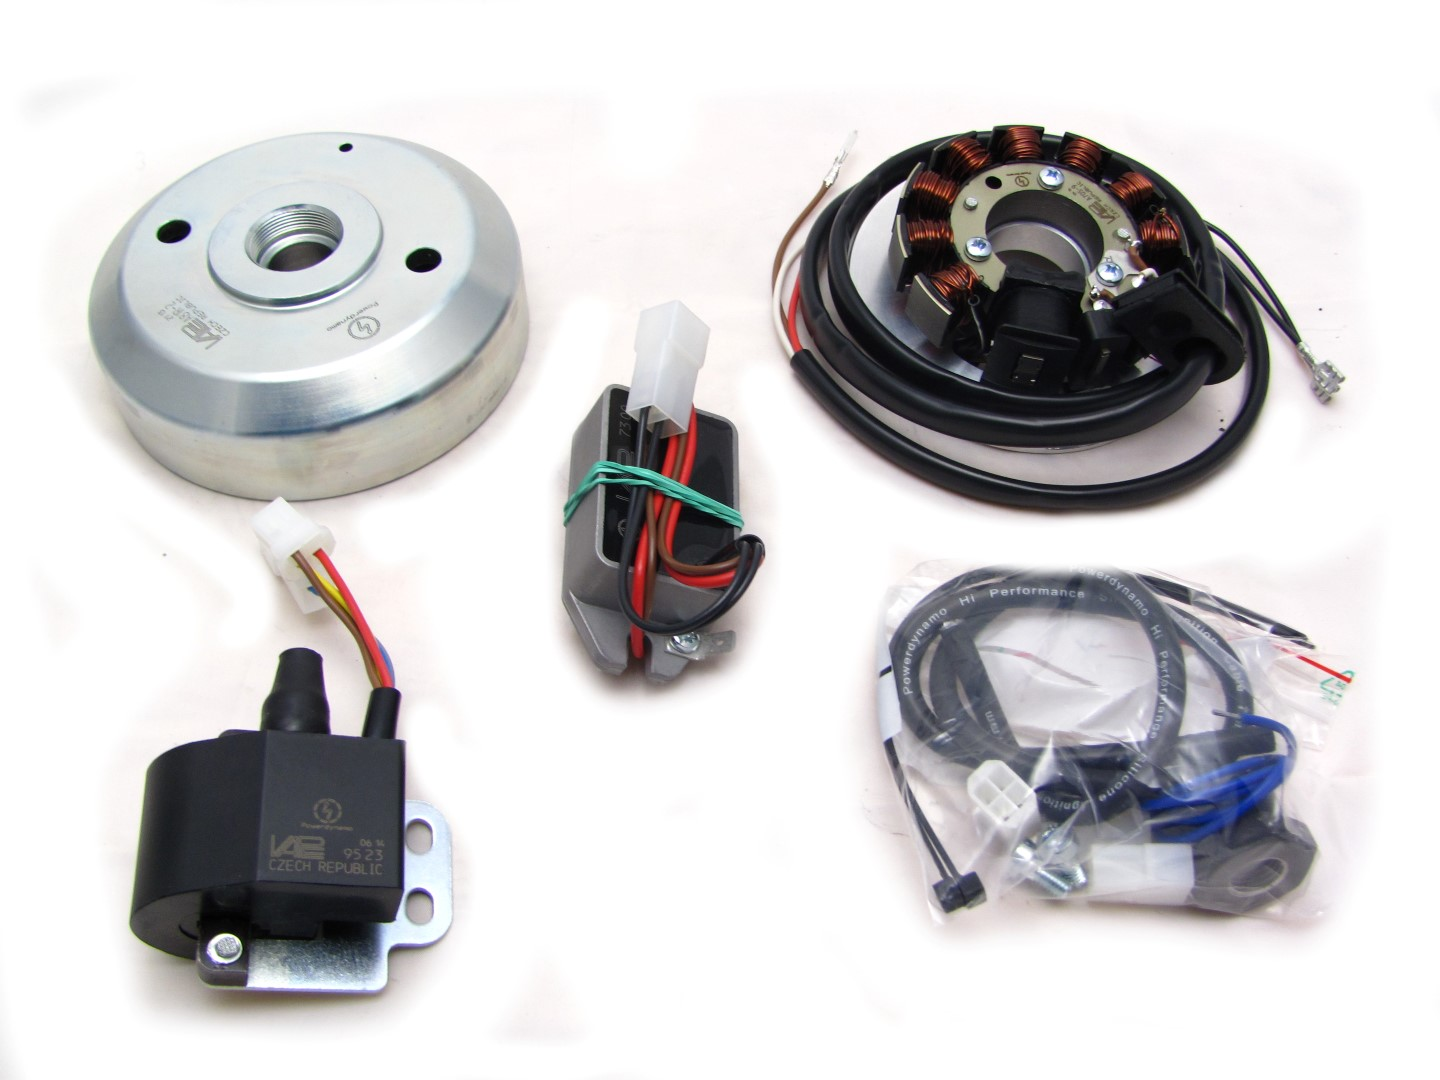 Powerdynamo For Kawasaki Ke 175d Power Wiring Diagram Solid State Ignition With Own Supply From Within The System Replaces Old Magneto Pickup Regulator And Coil